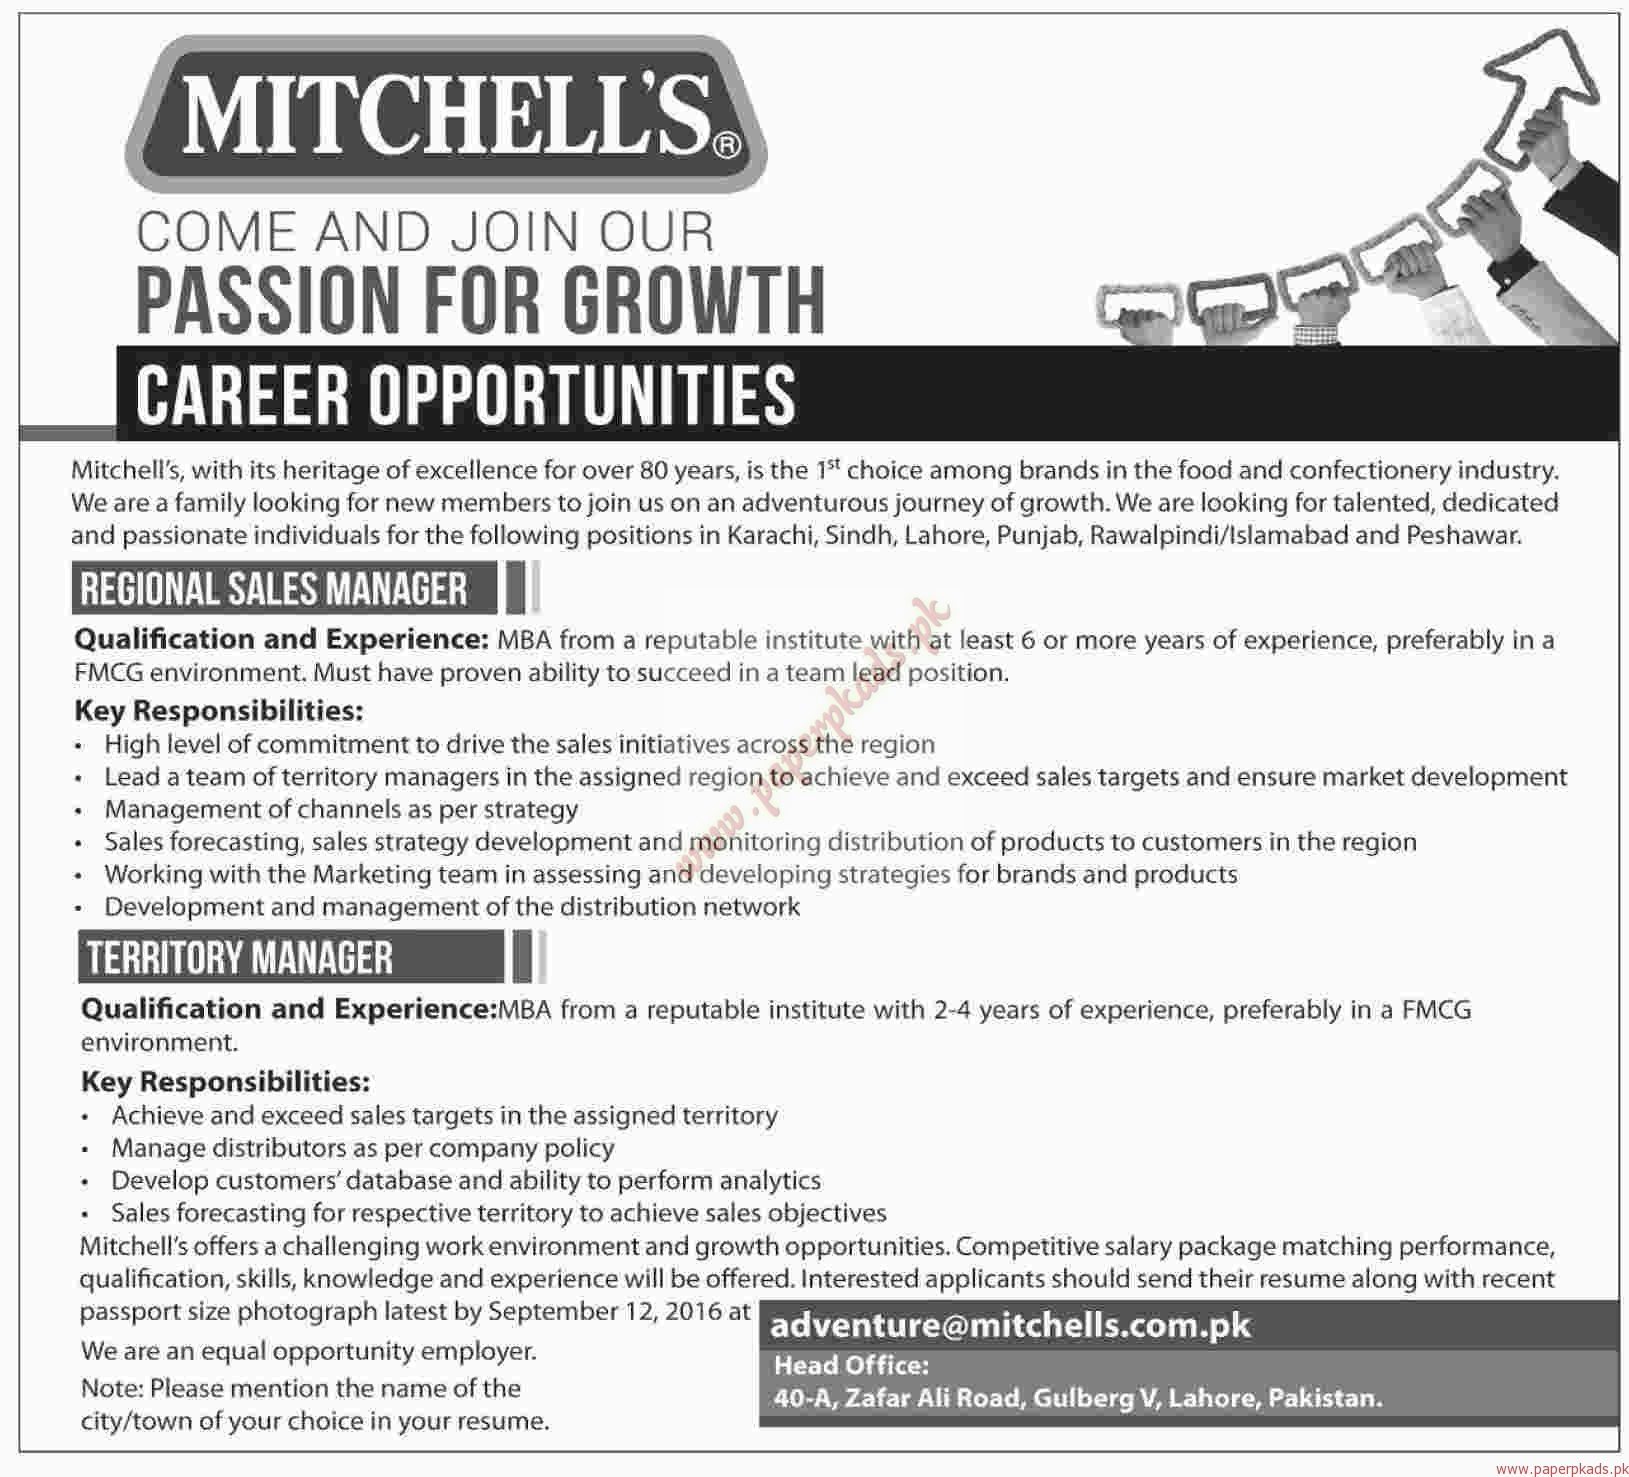 regional s manager and territory manager jobs dawn jobs ads regional s manager and territory manager jobs dawn jobs ads 04 2016